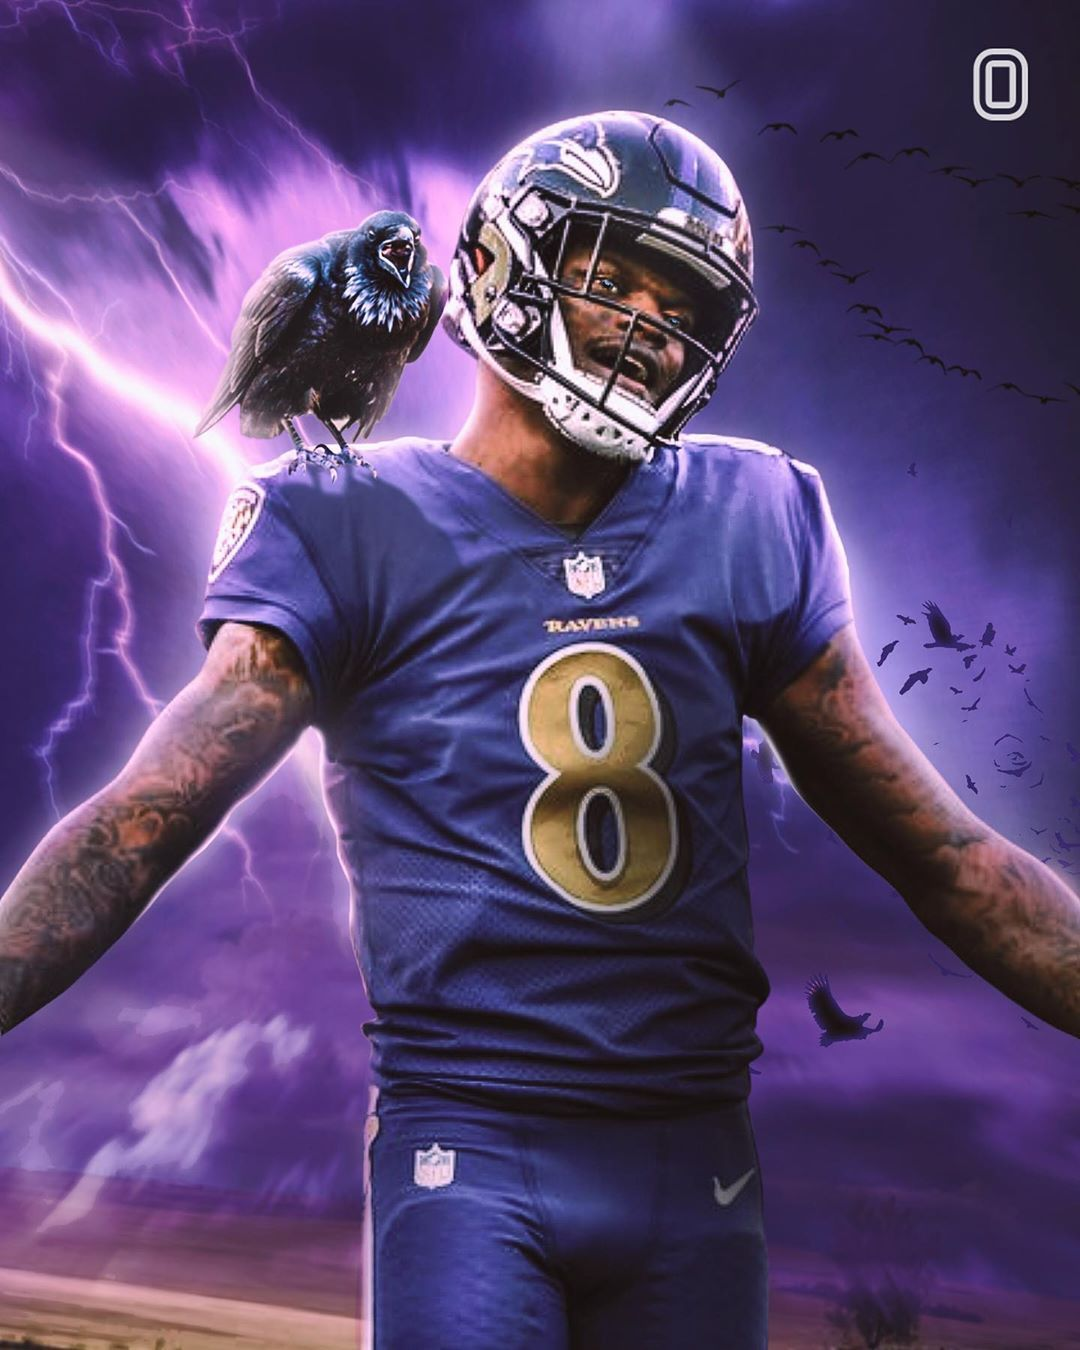 Overtime Edits On Instagram Who S Your Fave Player New Era8 Overtimeszn In 2020 Nfl Football Art Lamar Jackson Wallpaper Football Is Life